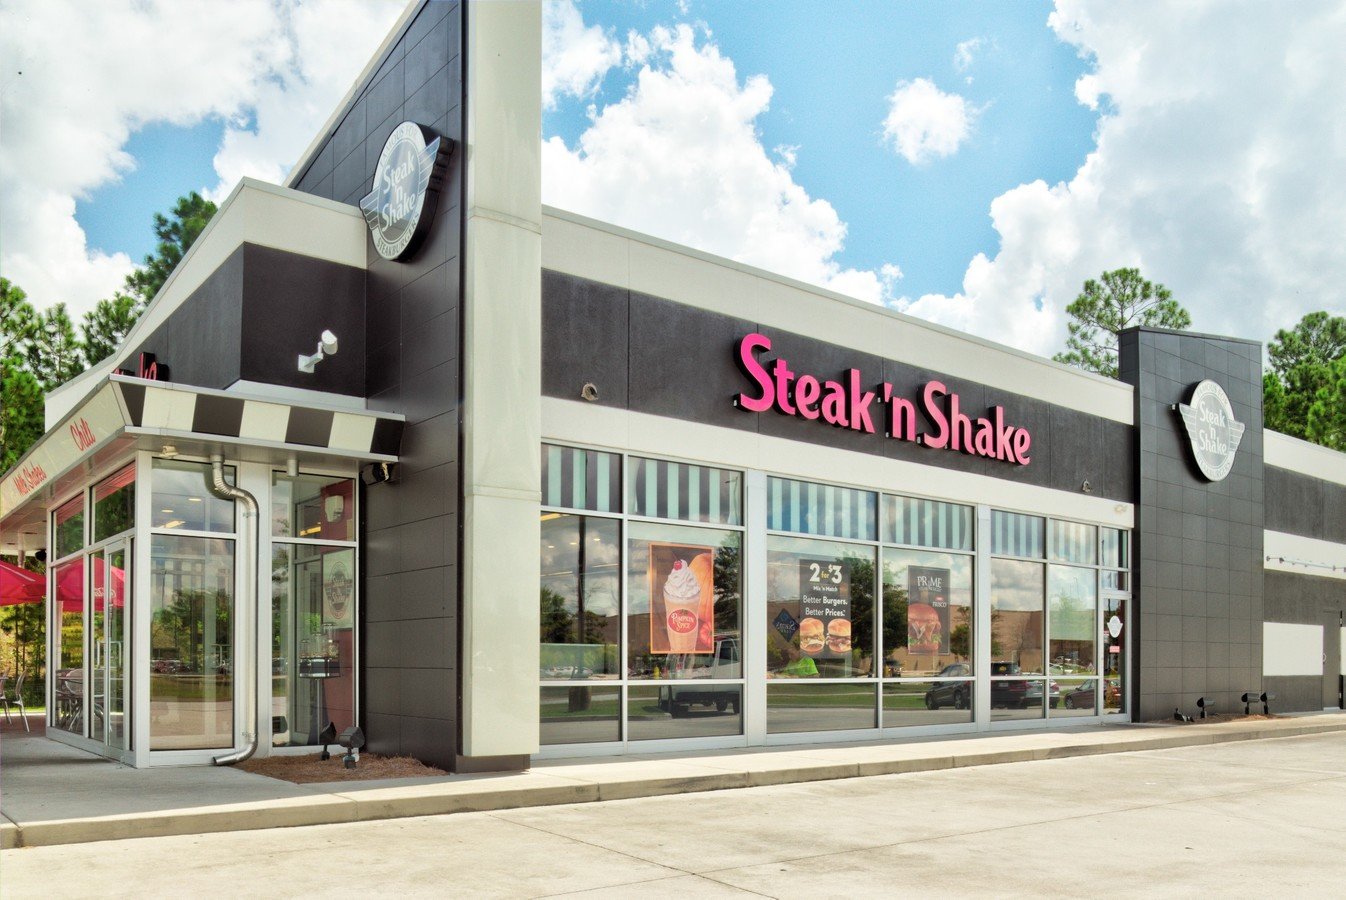 Steak n' Shake in Pooler, GA SnS Pooler side 1  Businesses for Sale SnS Pooler side 1